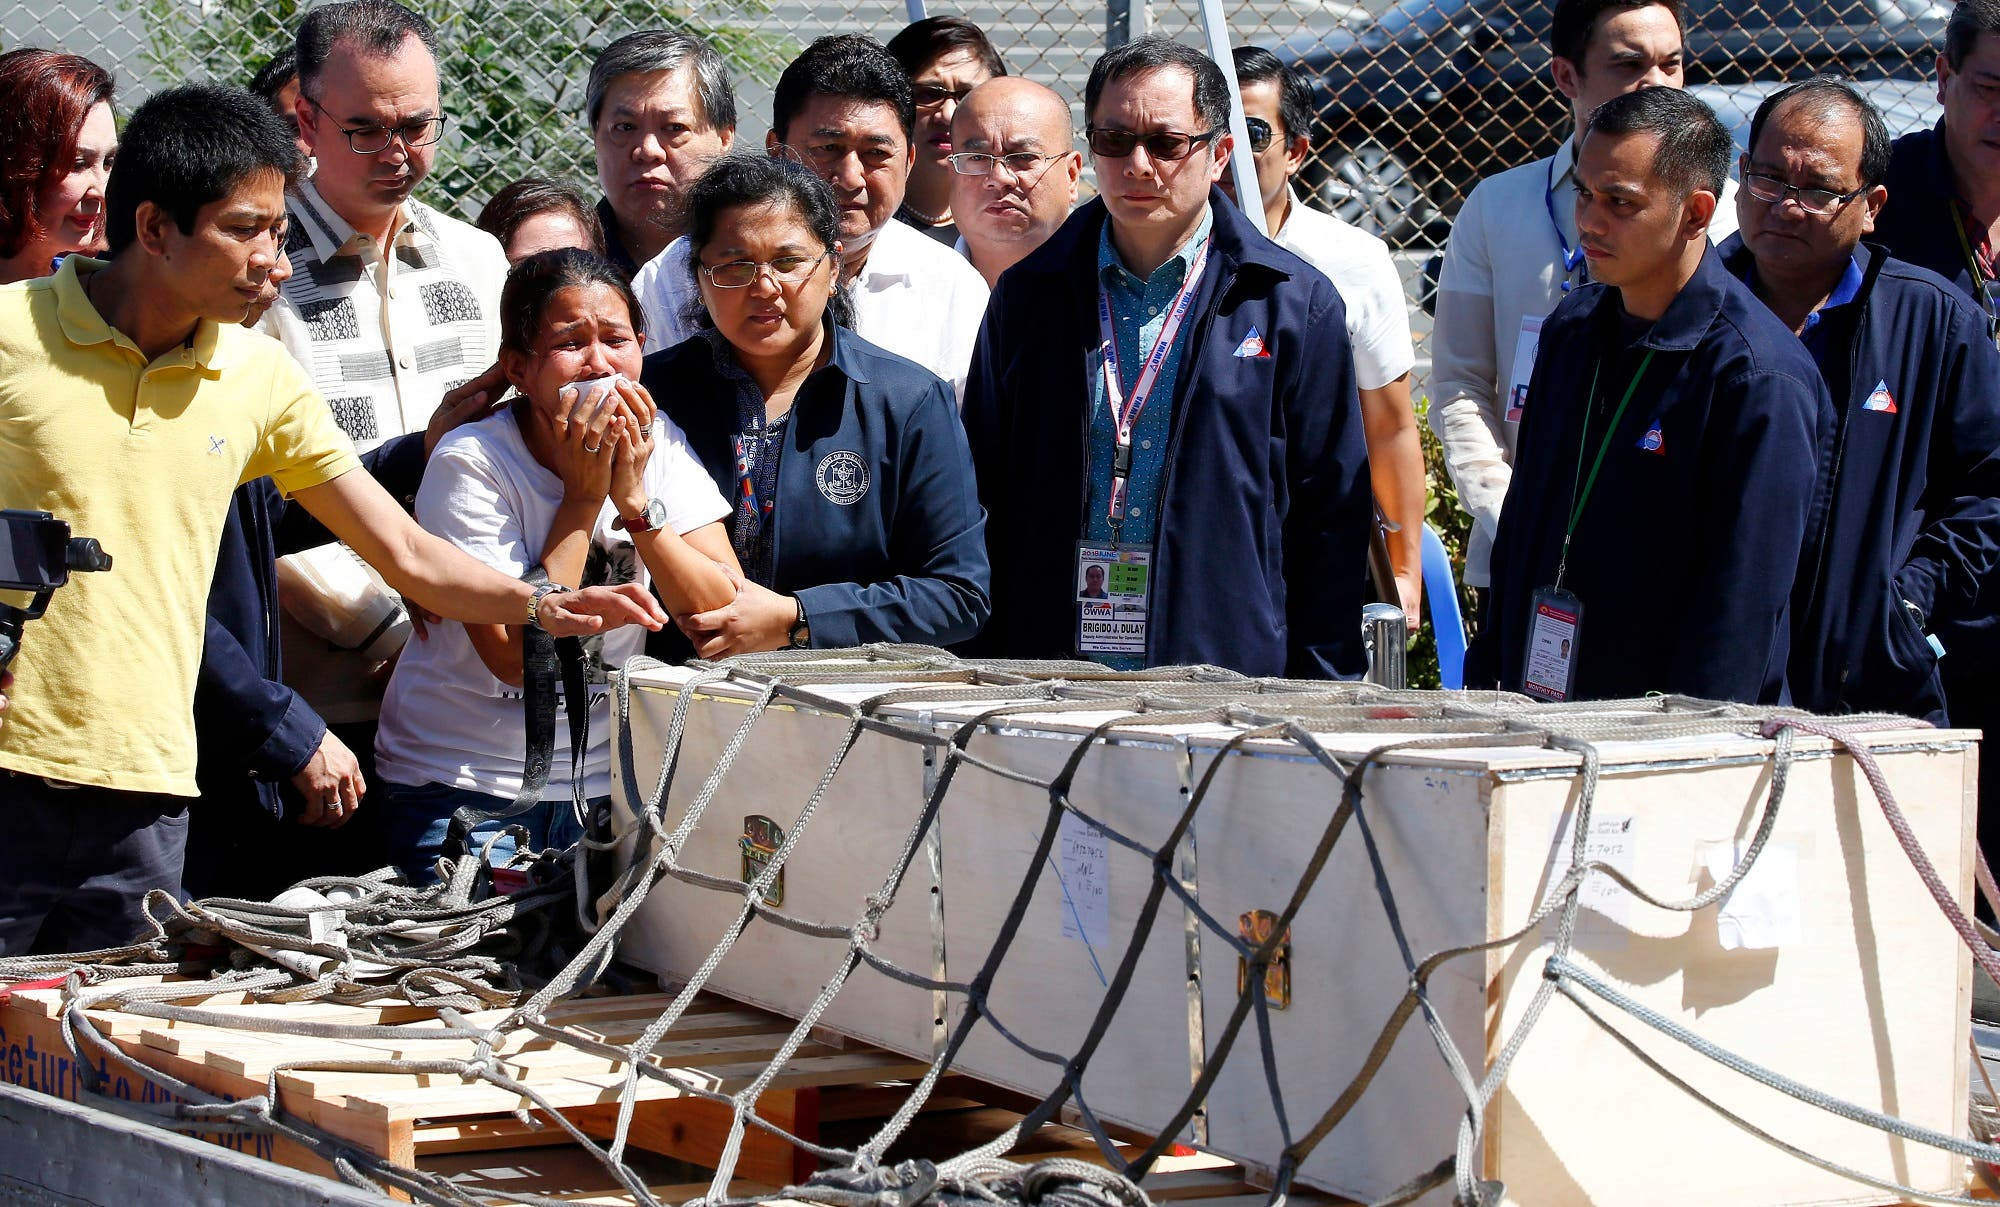 Jessica Demafelis, the sister of Joanna Demafelis who was found dead in a freezer in Kuwait, cries as the wooden casket of her remains arrives at the Ninoy Aquino International Airport Friday, Feb. 16, 2018